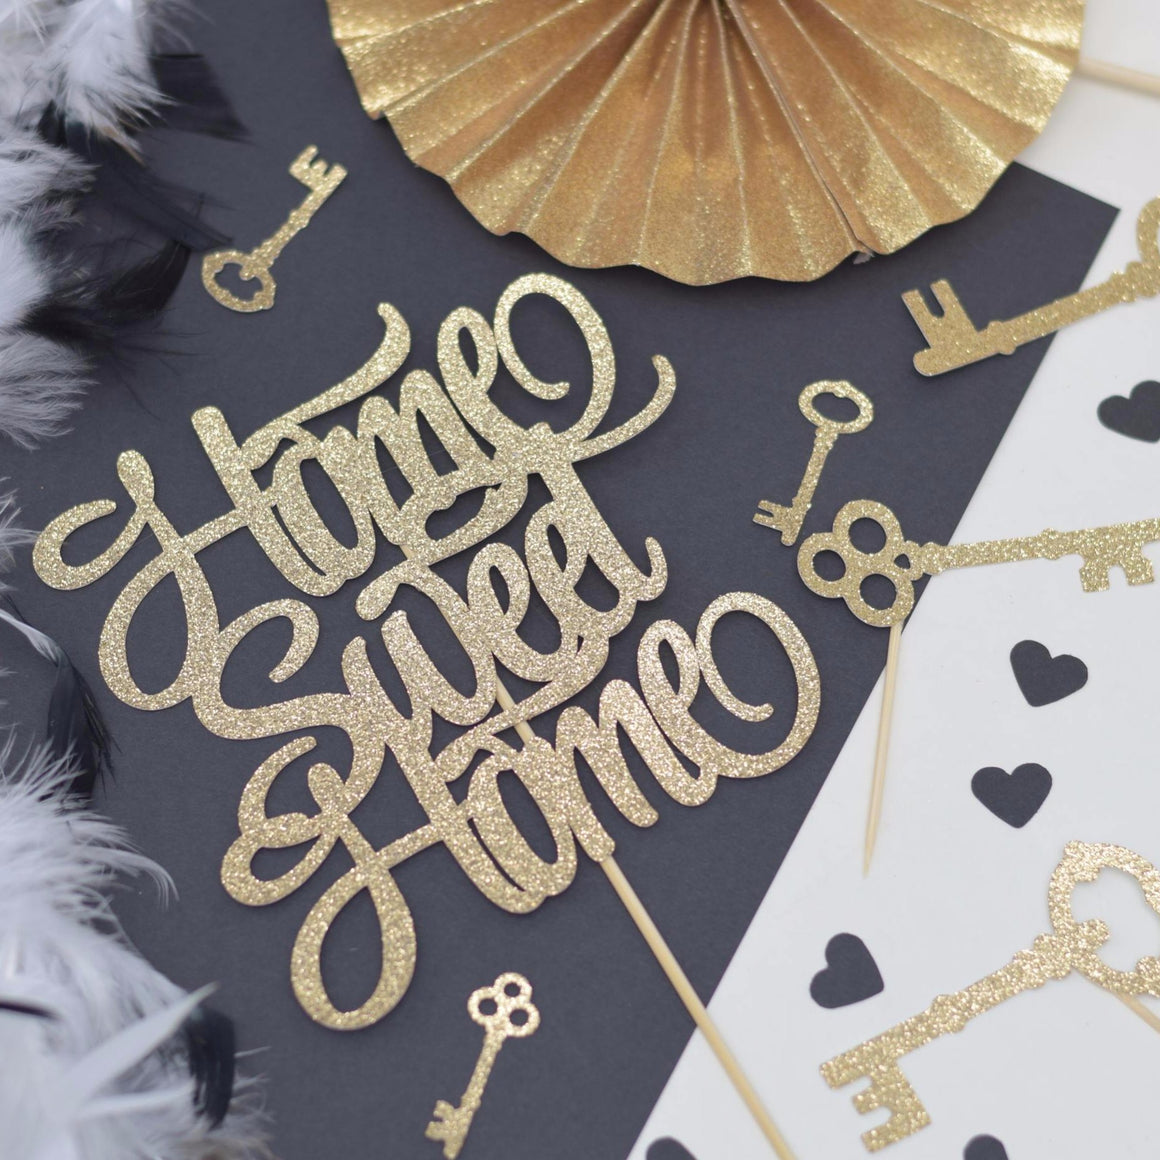 Home Sweet Home gold sparkle cake topper with gold key decorations